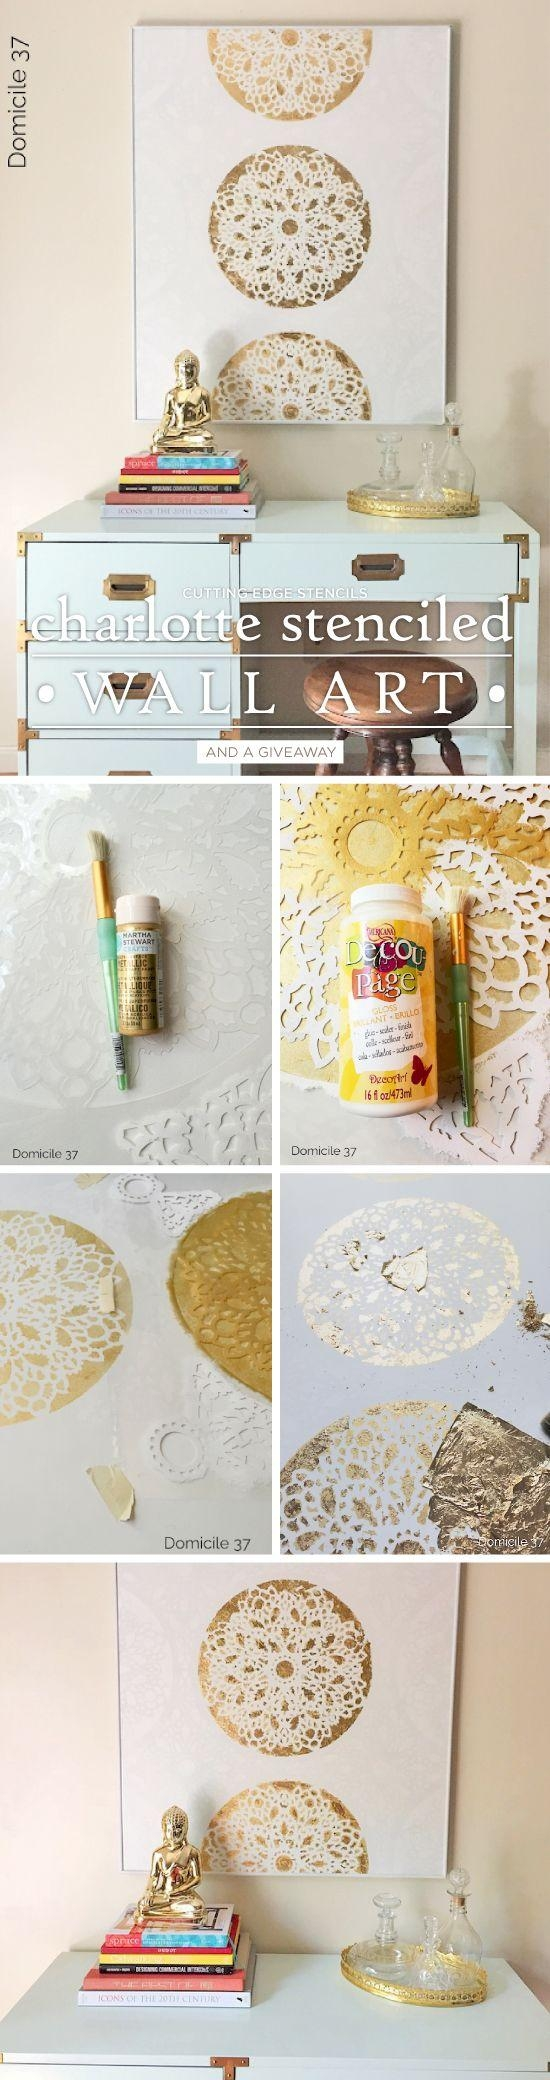 Best 10+ Diy Wall Art Ideas On Pinterest | Diy Art, Diy Wall Decor Pertaining To Pinterest Diy Wall Art (Image 4 of 20)